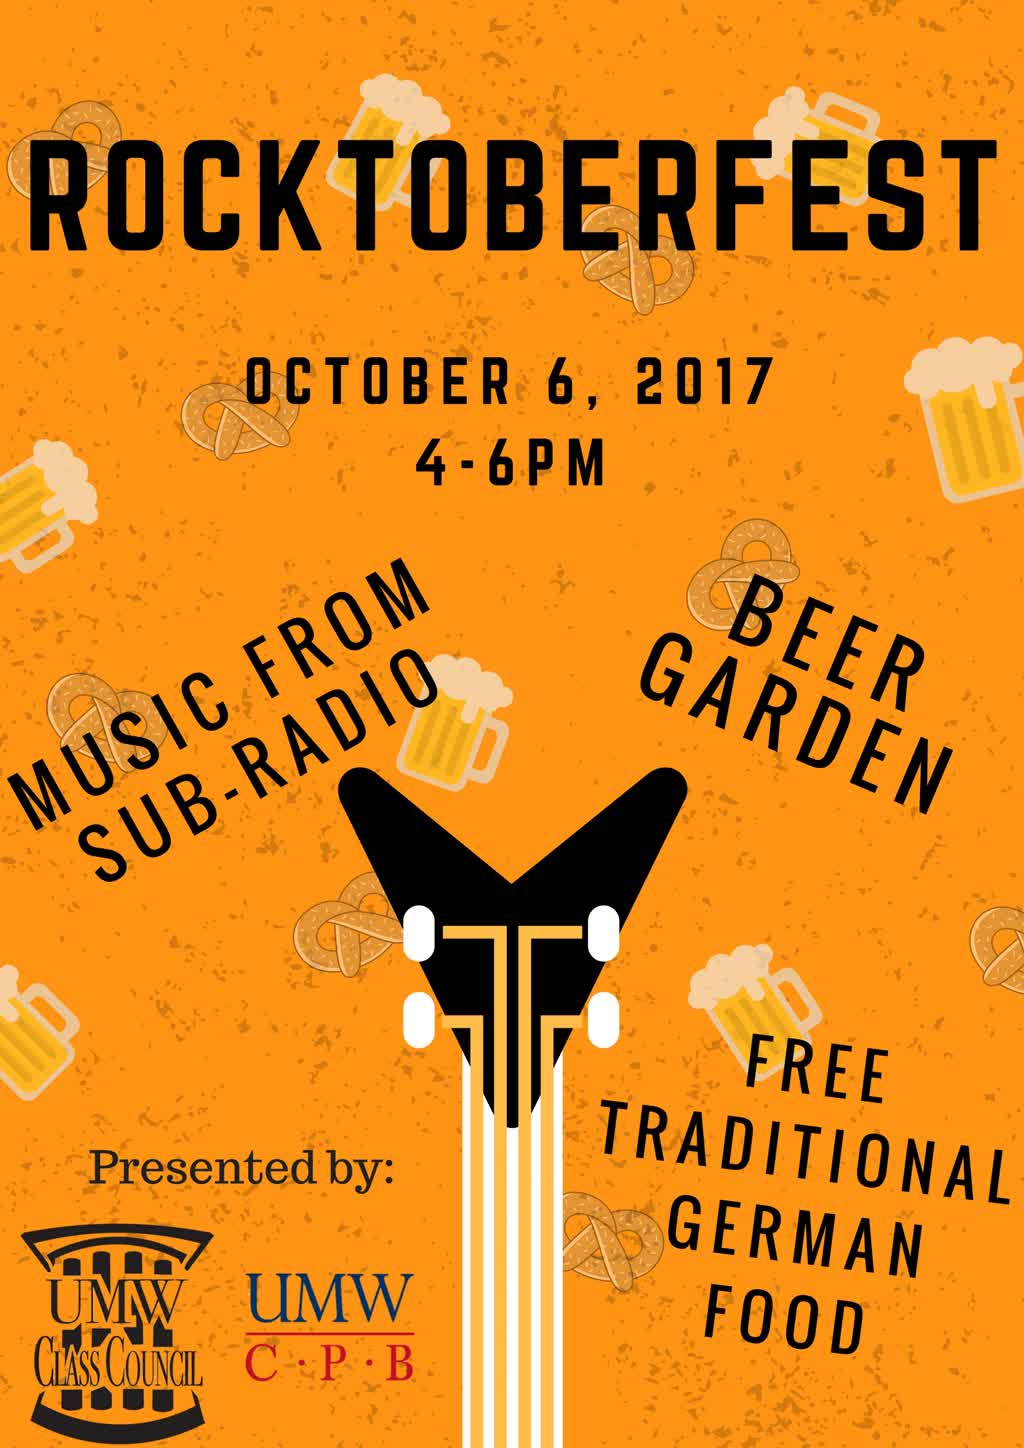 Information regarding Rocktoberfest is as follows Create Your Own Tag: is #rocktoberfest and Start date is September 25 2017 and End Date is October 06 2017 and File is Browse and Group Name is Class Council and Email is ghowie@mail.umw.edu and Name is Grace Howie and File Name is Rocktoberfest_comp.jpg and Affiliation is Recognized Student Organization and Name of Ad/Event is Rocktoberfest and Panel is Side and